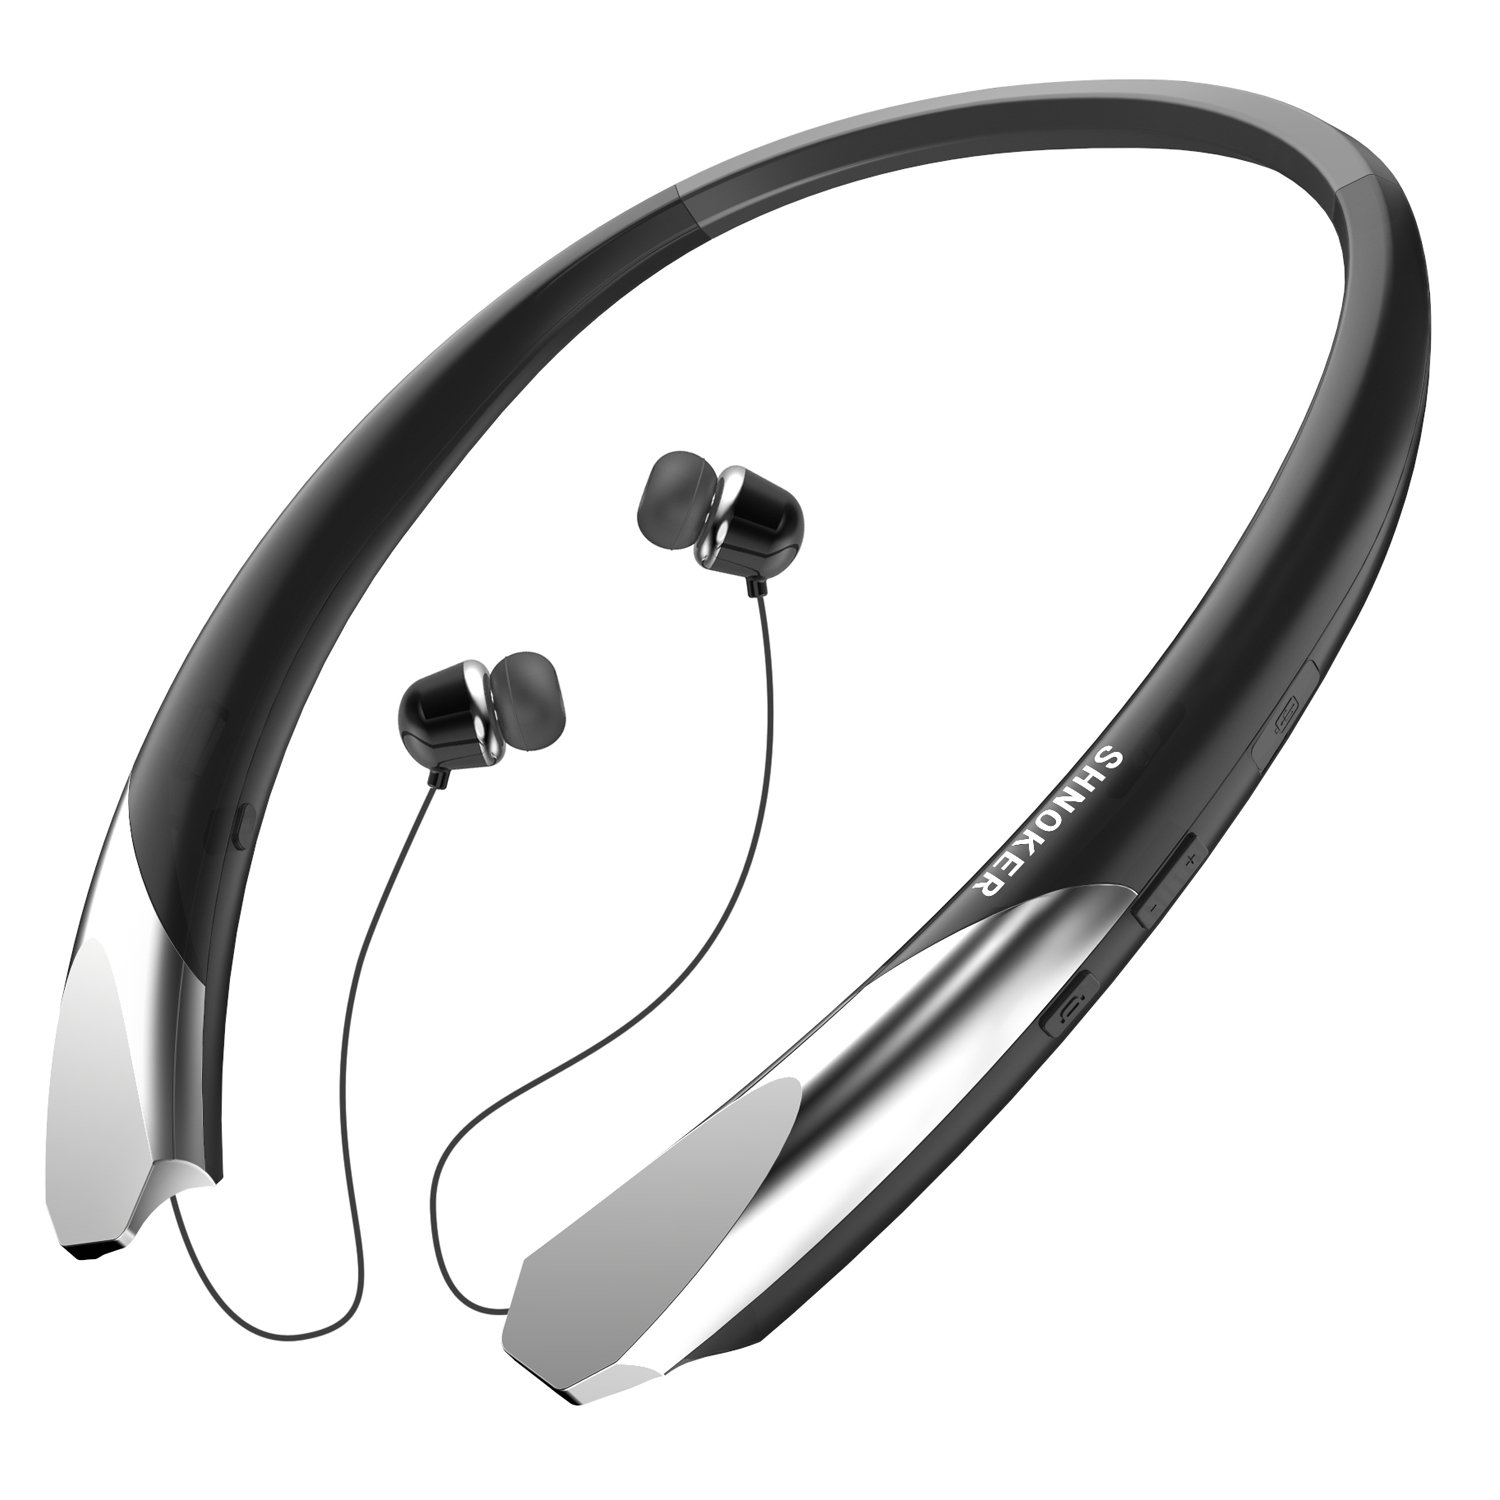 Bluetooth Headphones Sports Neckband Bluetooth Headsets Retractable Earbuds Wireless Sweatproof Bluetooth V4.1 Stereo Earphones with Noise Cancelling Mic for Iphone and Android Cellphones (Black)